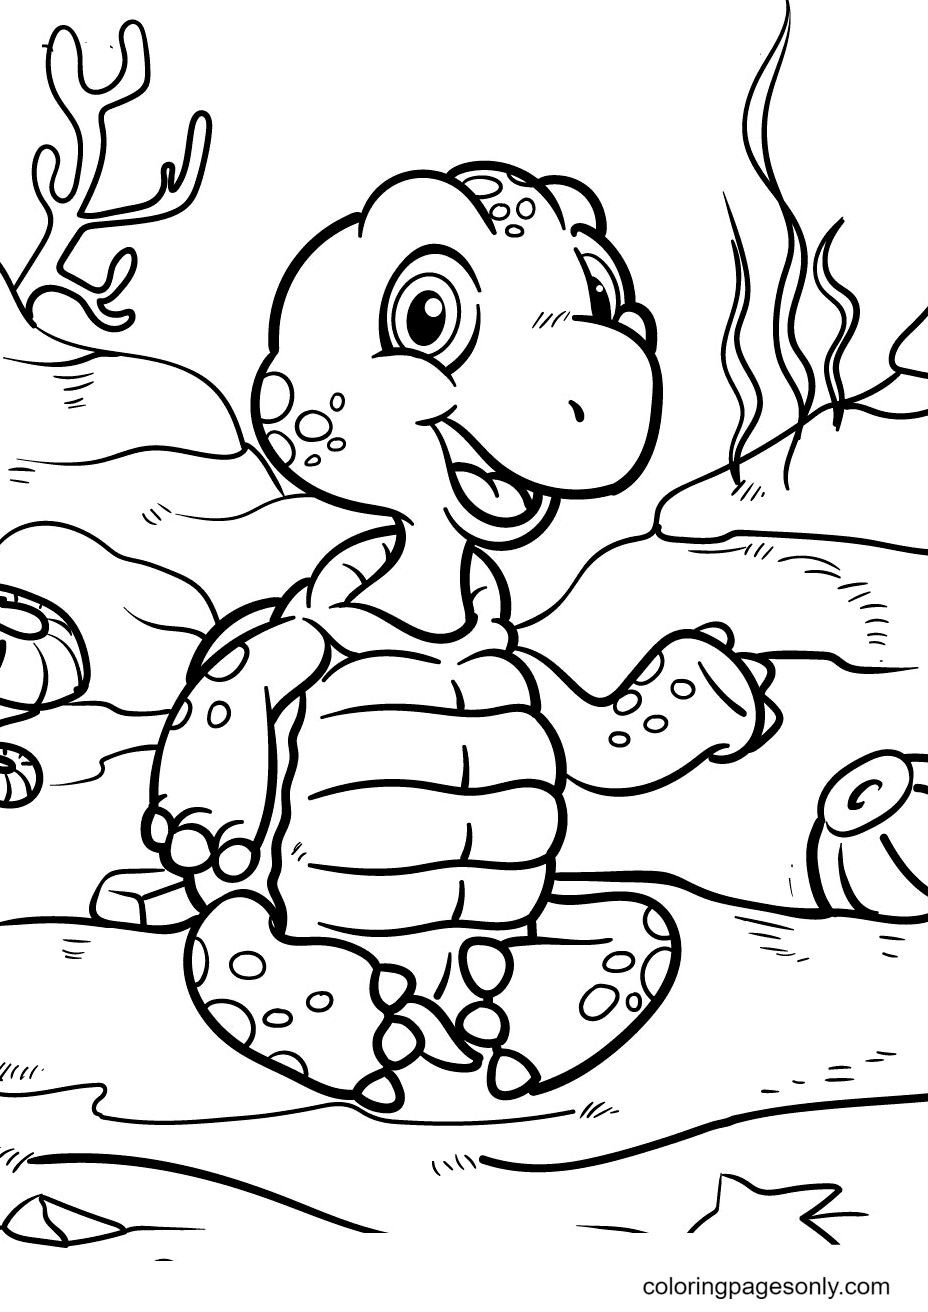 Turtles Playing At The Bottom Of the Ocean Coloring Page